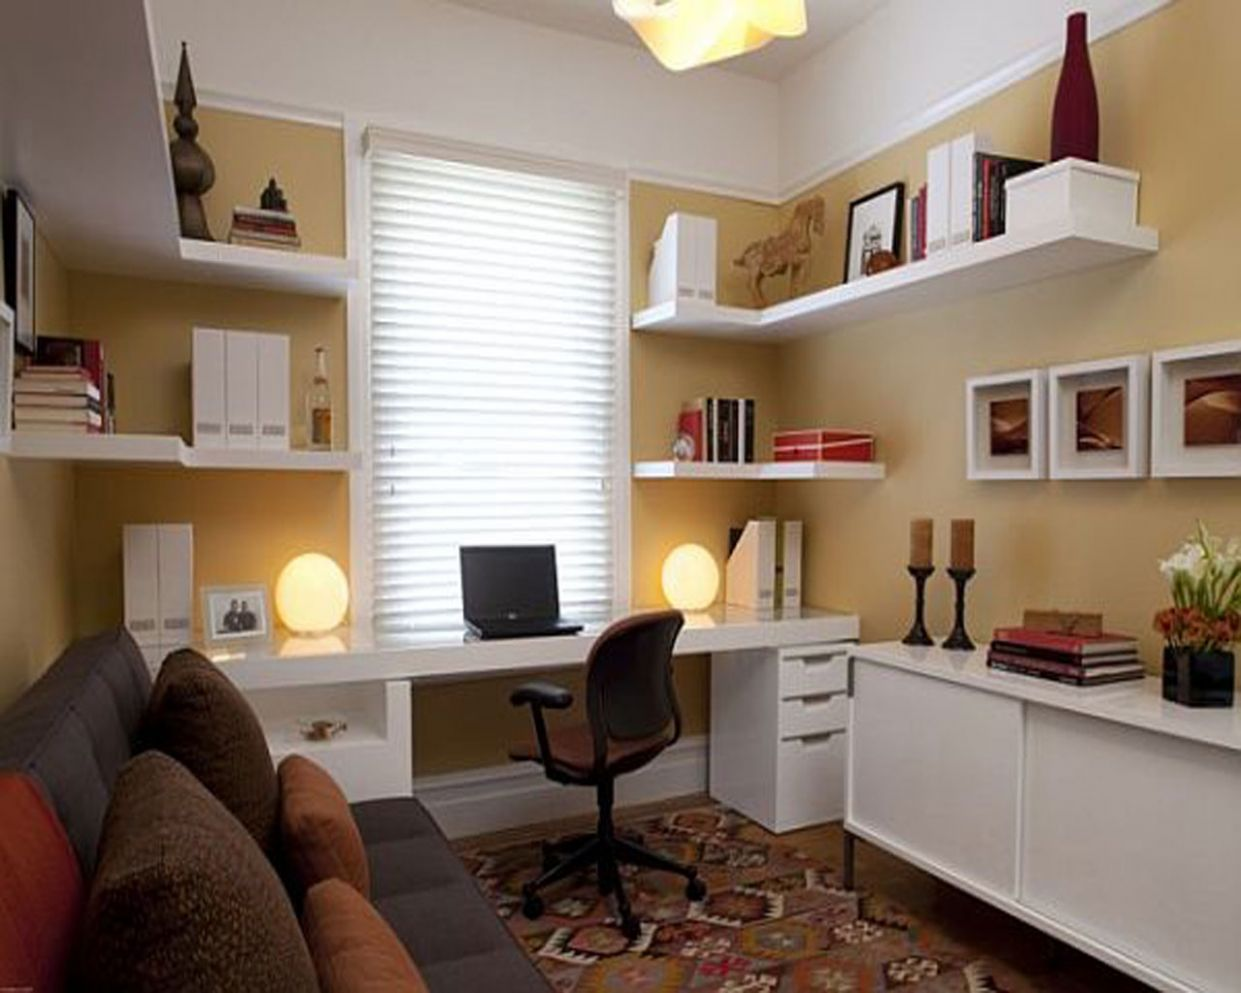 Home Office Apartment Ideas - Small Home Office With Couch ...